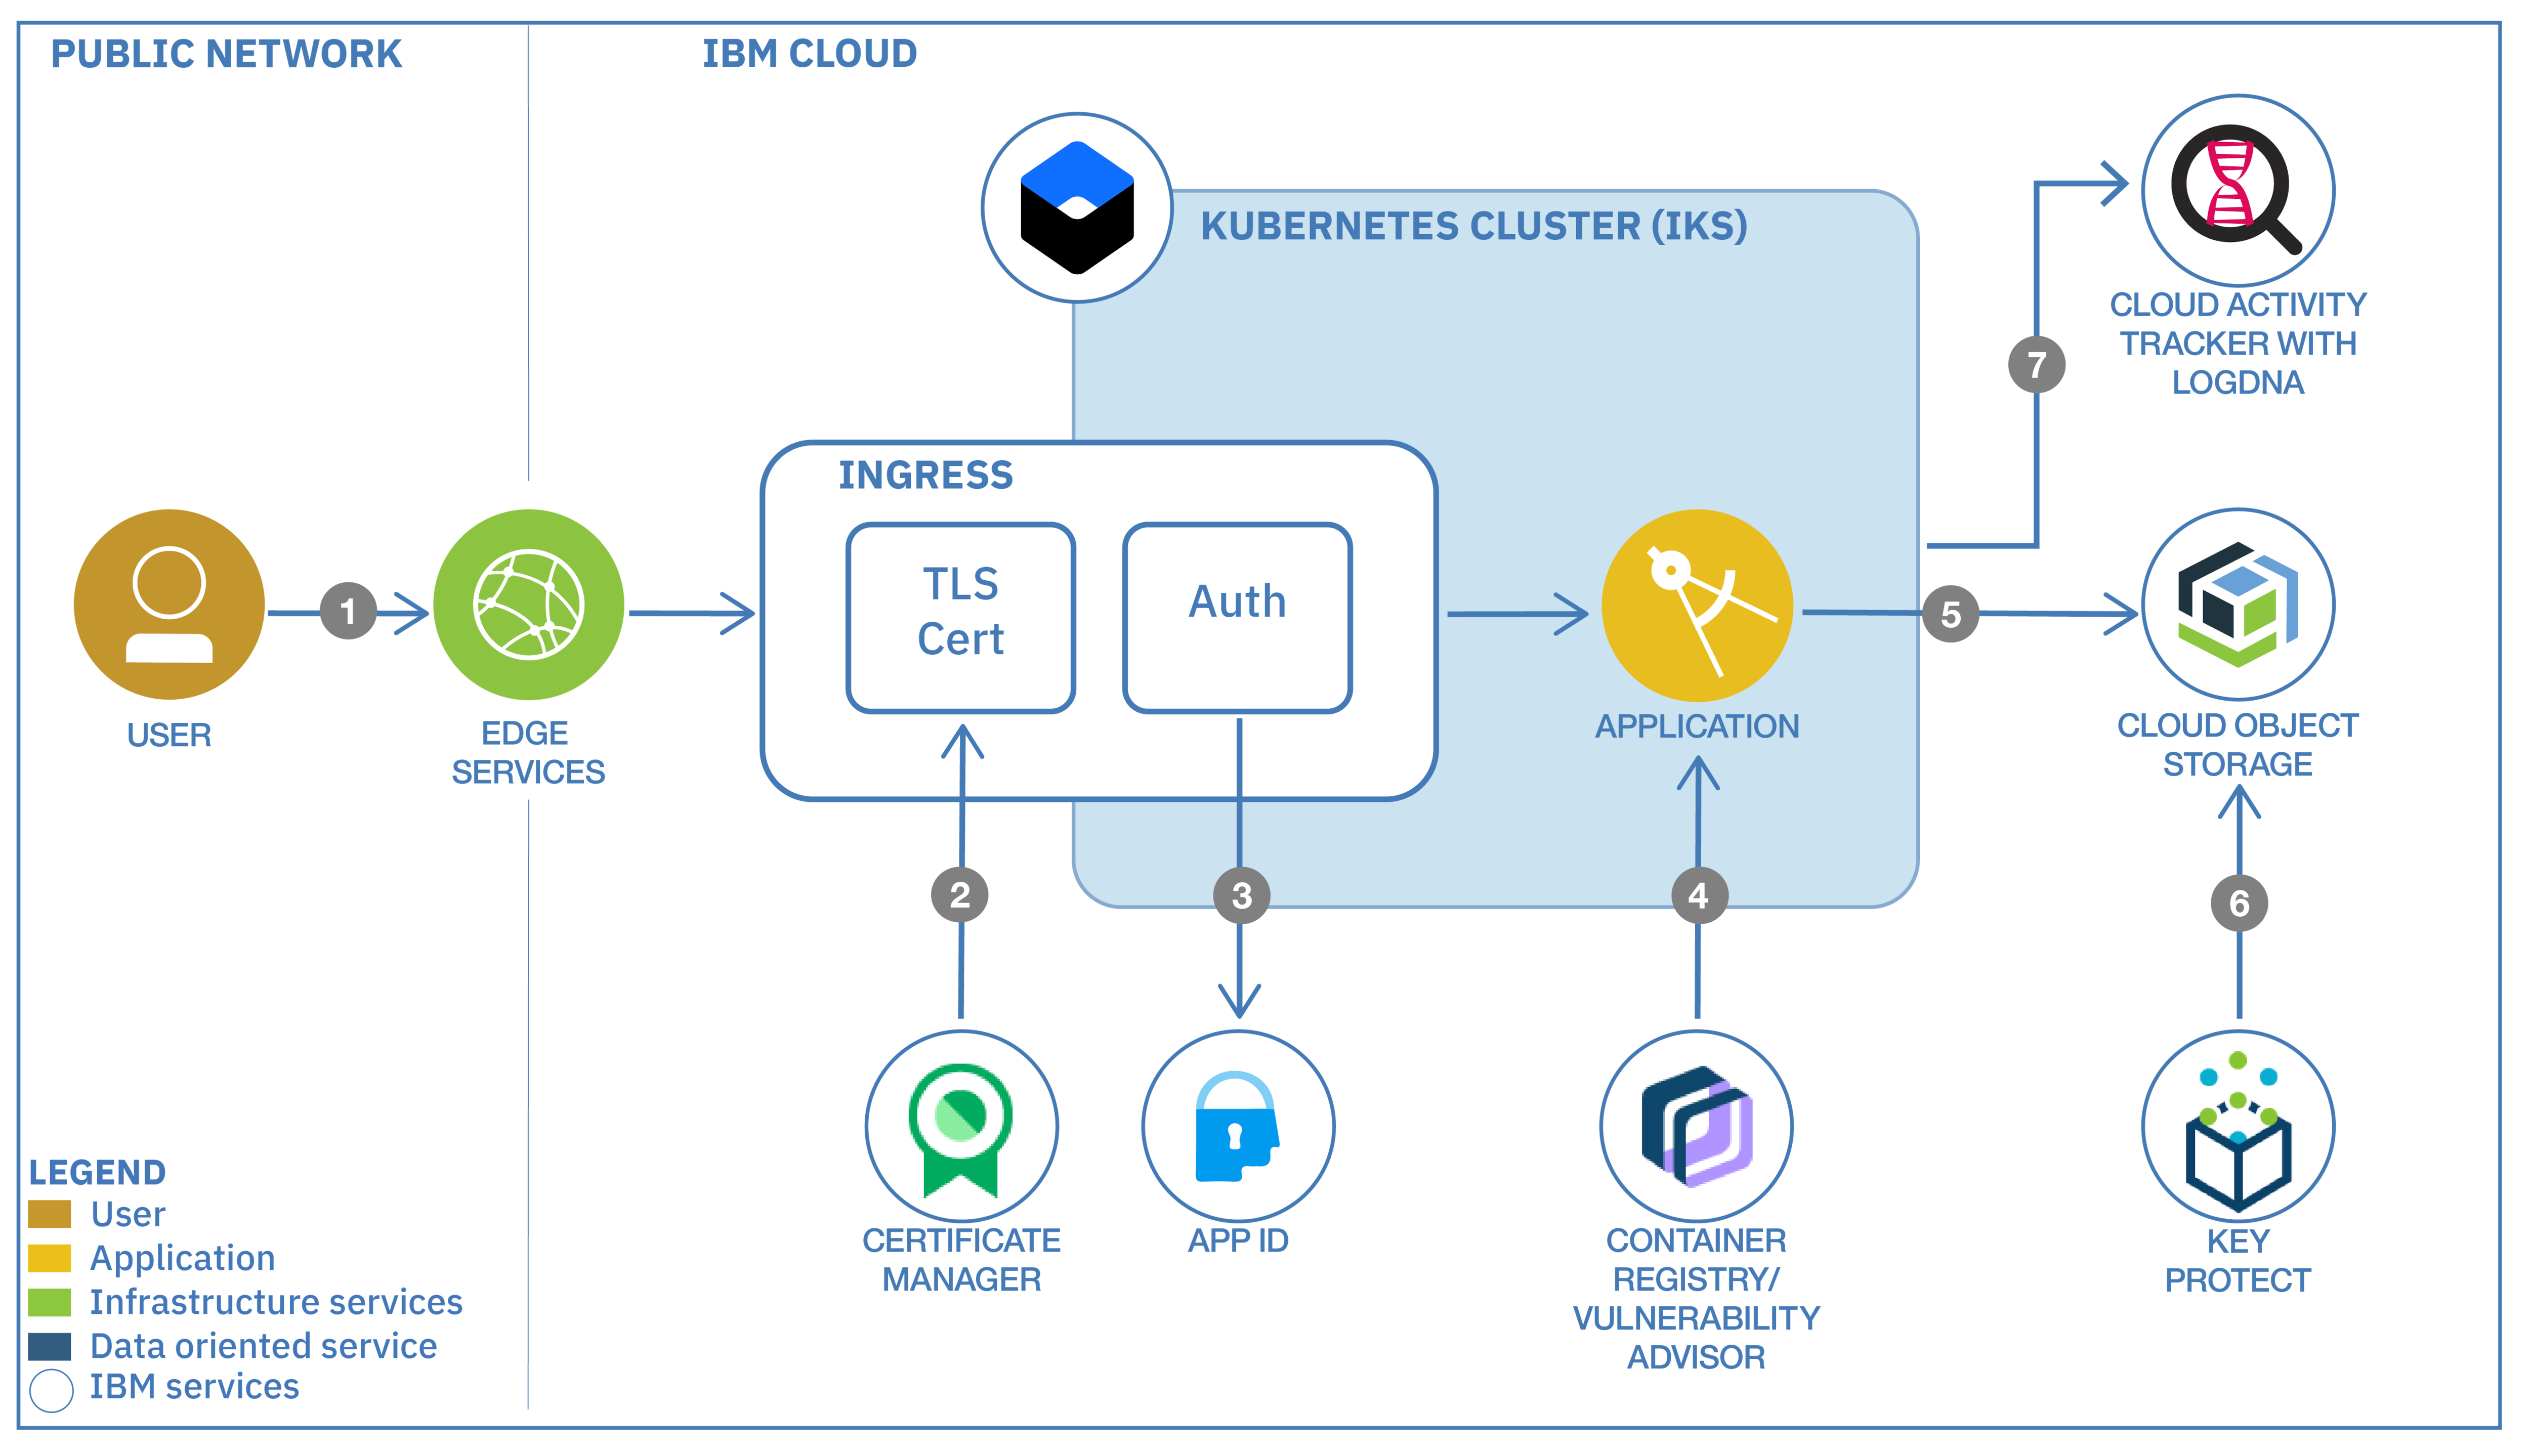 Example architecture end-to-end secure flow for a sample IBM Cloud Kubernetes Service application